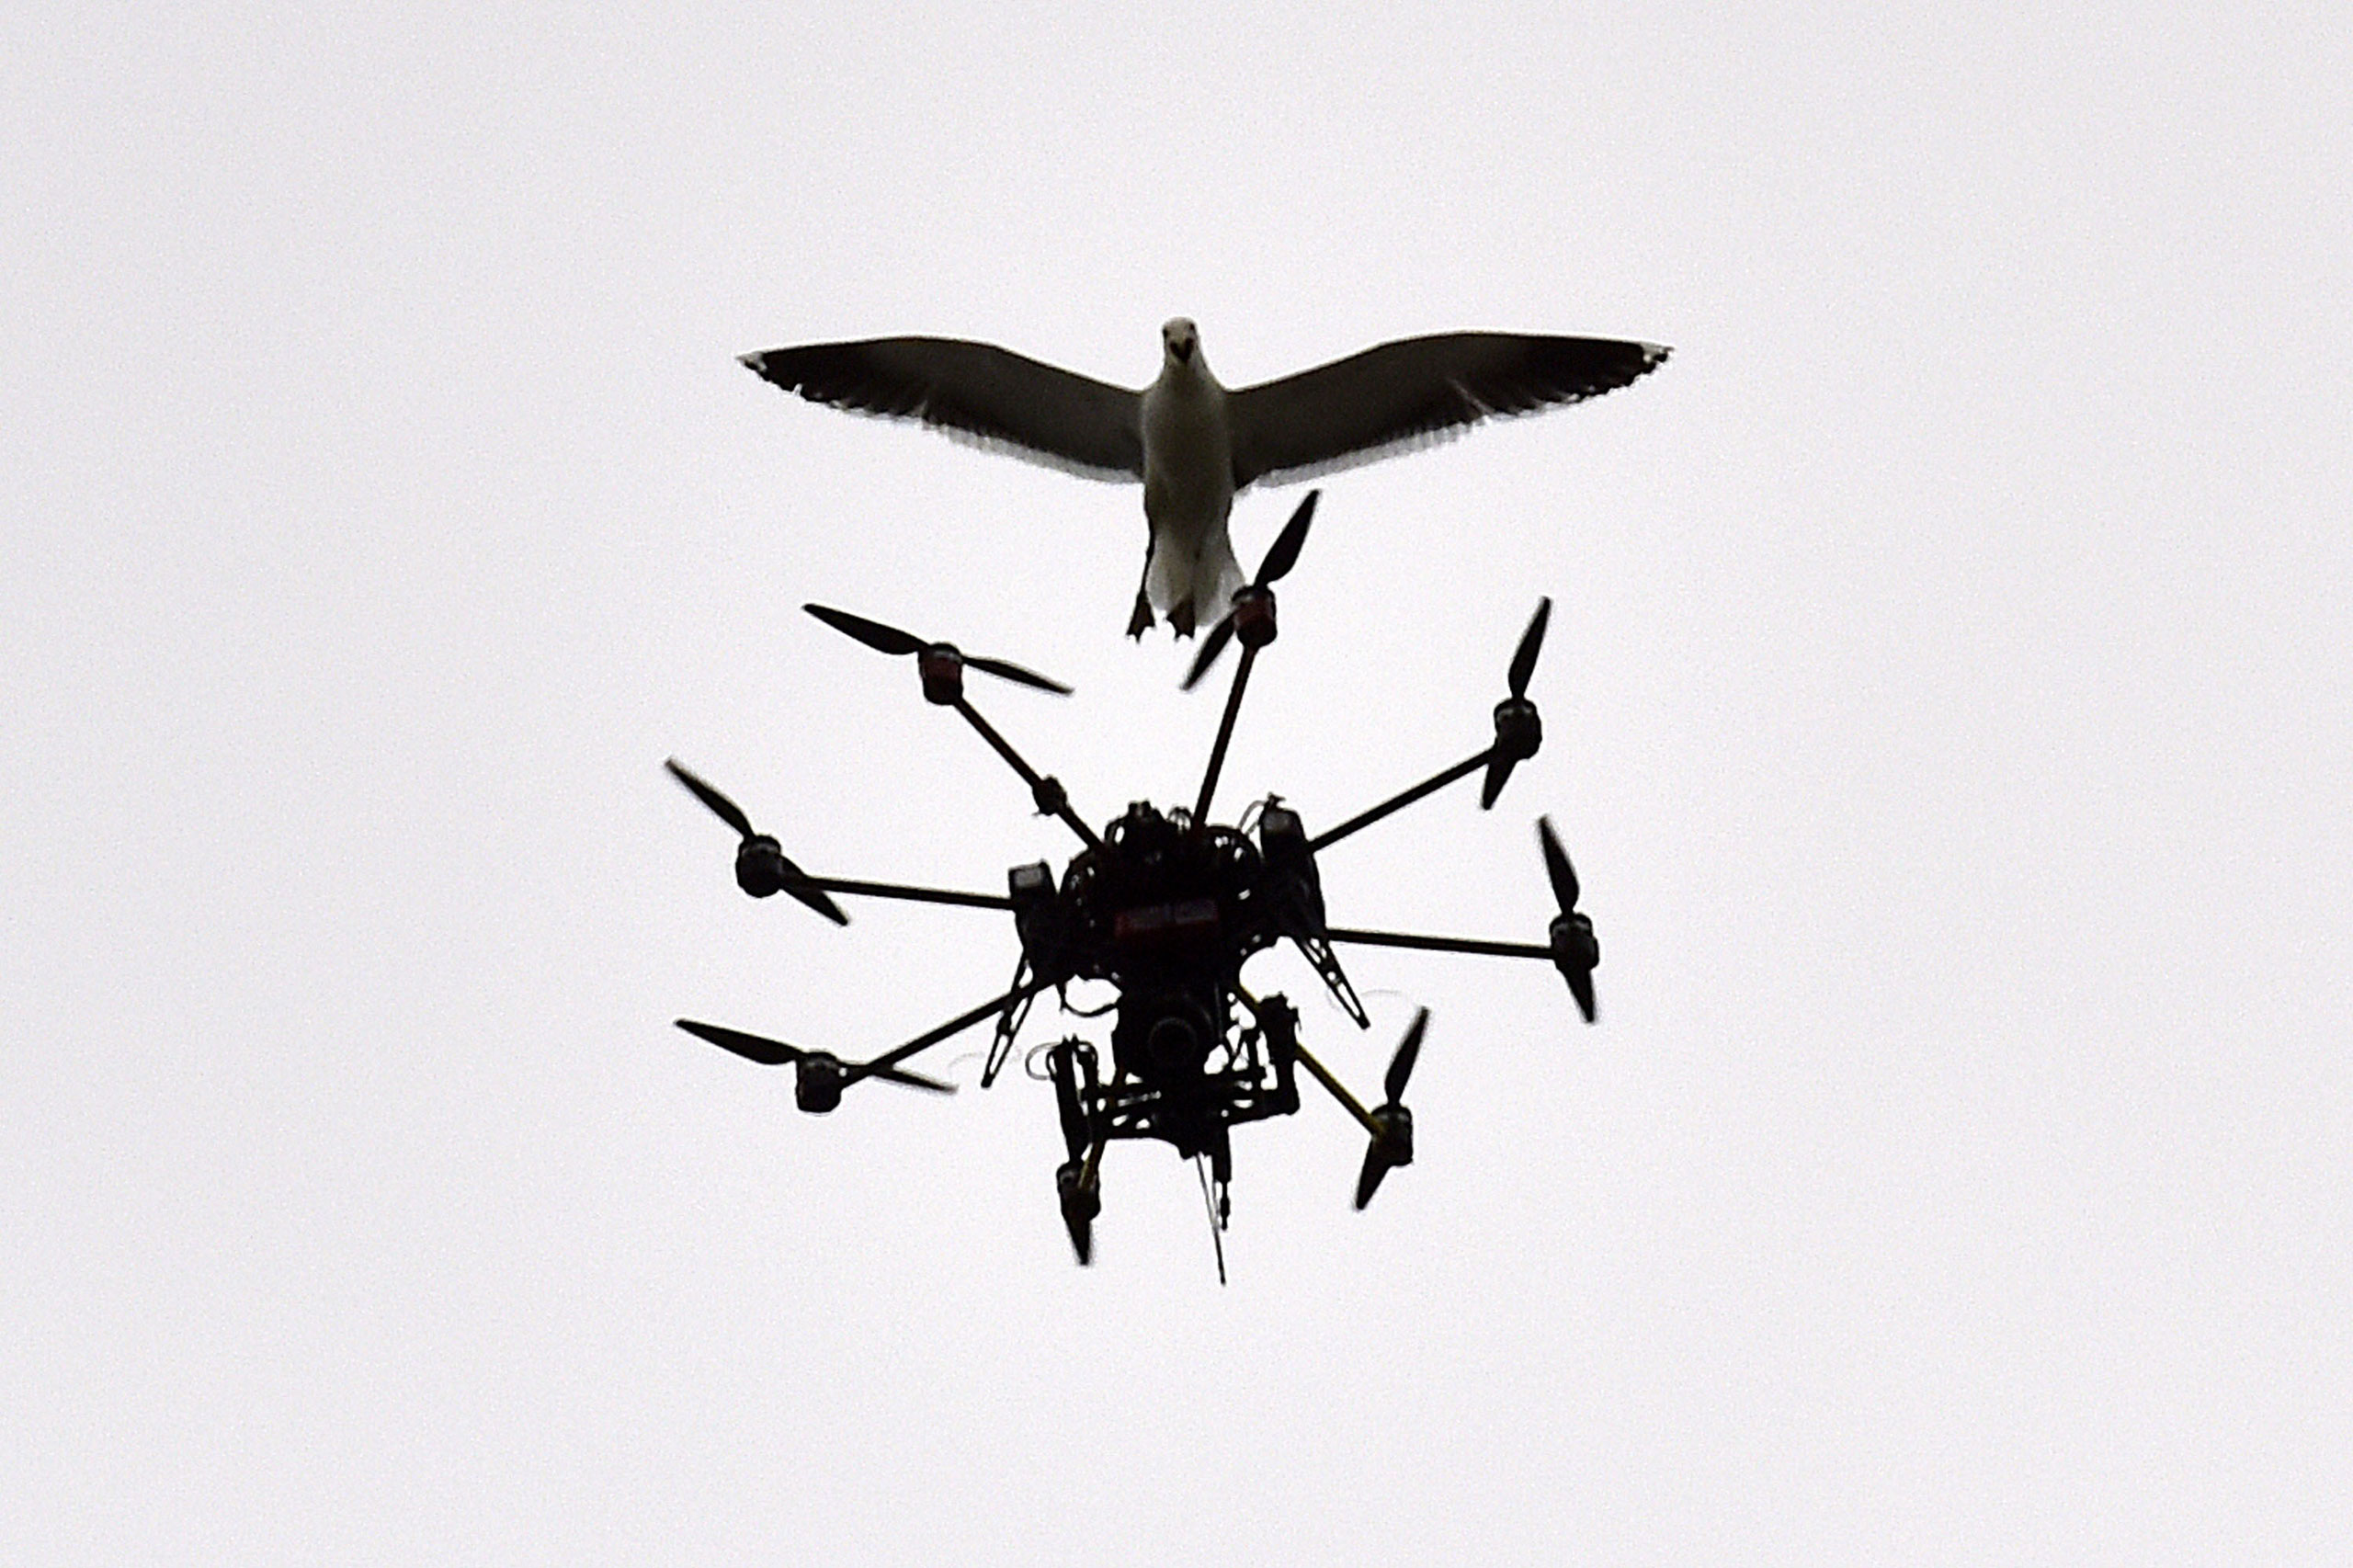 A seagull swoops at a Sky TV drone covering the cricket on day five of the second International Test cricket match between New Zealand and Sri Lanka, at the Basin Reserve in Wellington, New Zealand, Jan. 7, 2015.